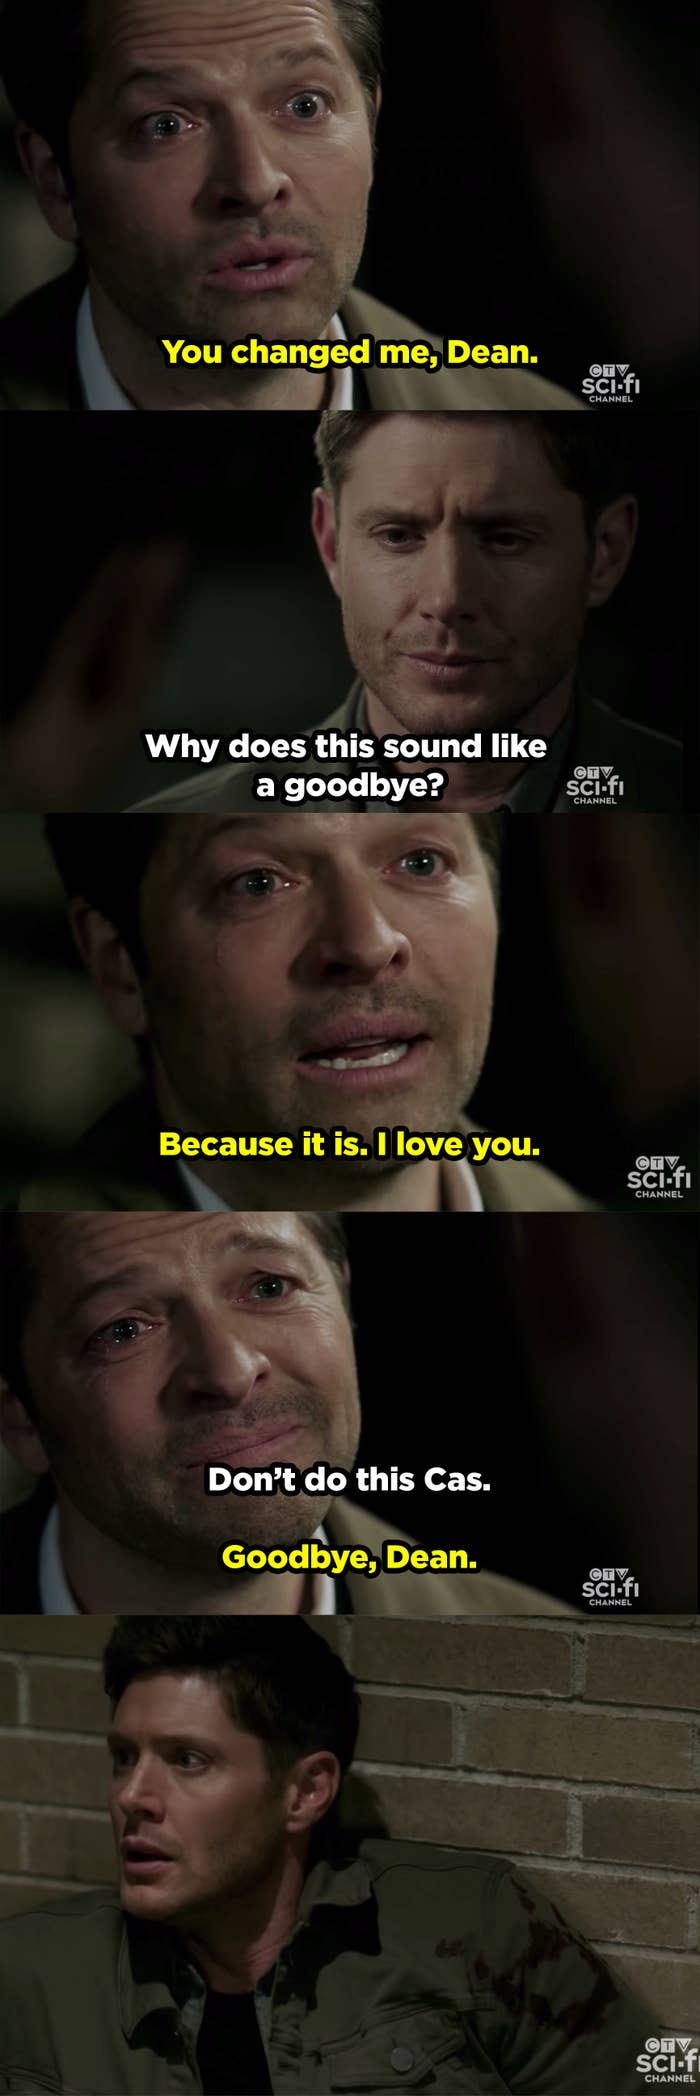 Castiel says to Dean that knowing him changed him, and that he loves him. Then, Cas sacrifices himself to save Dean.